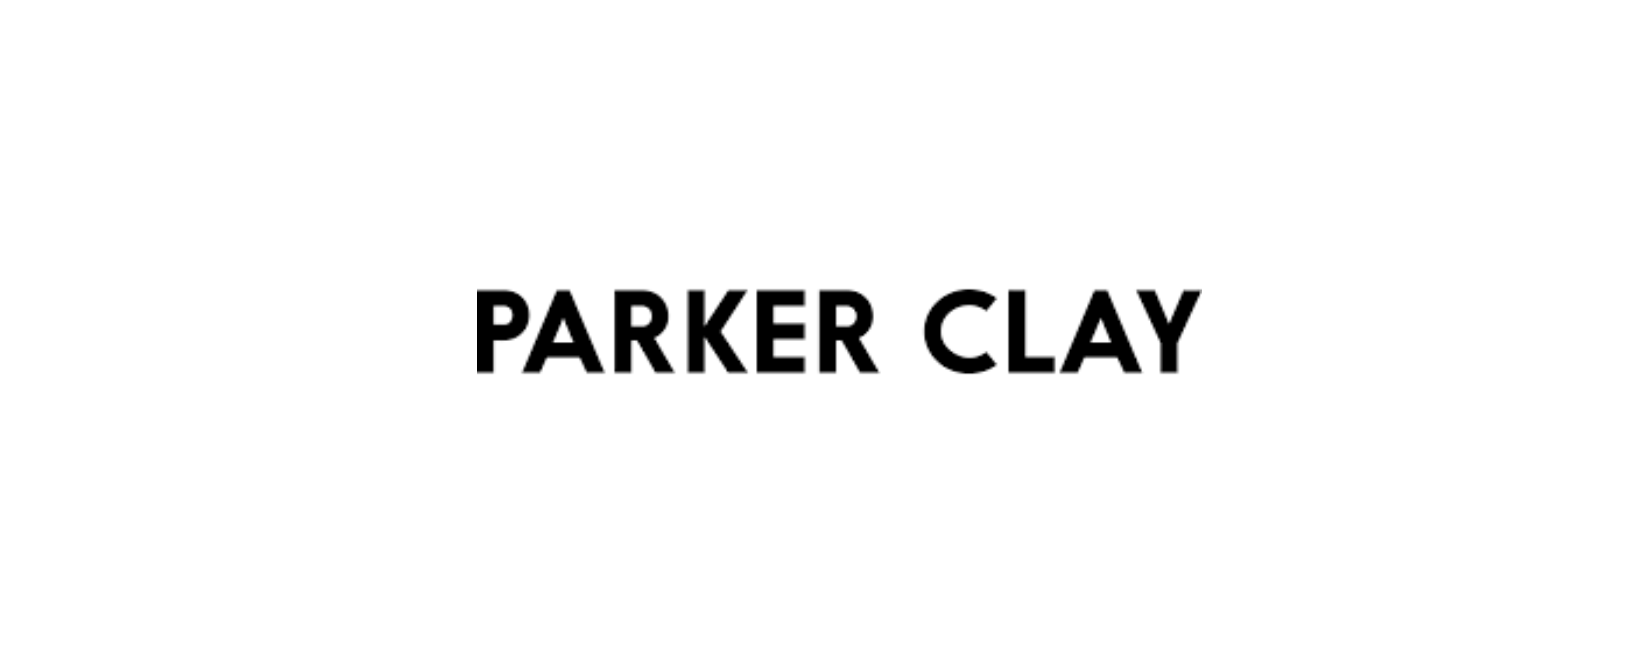 Parker Clay Discount Code 2021